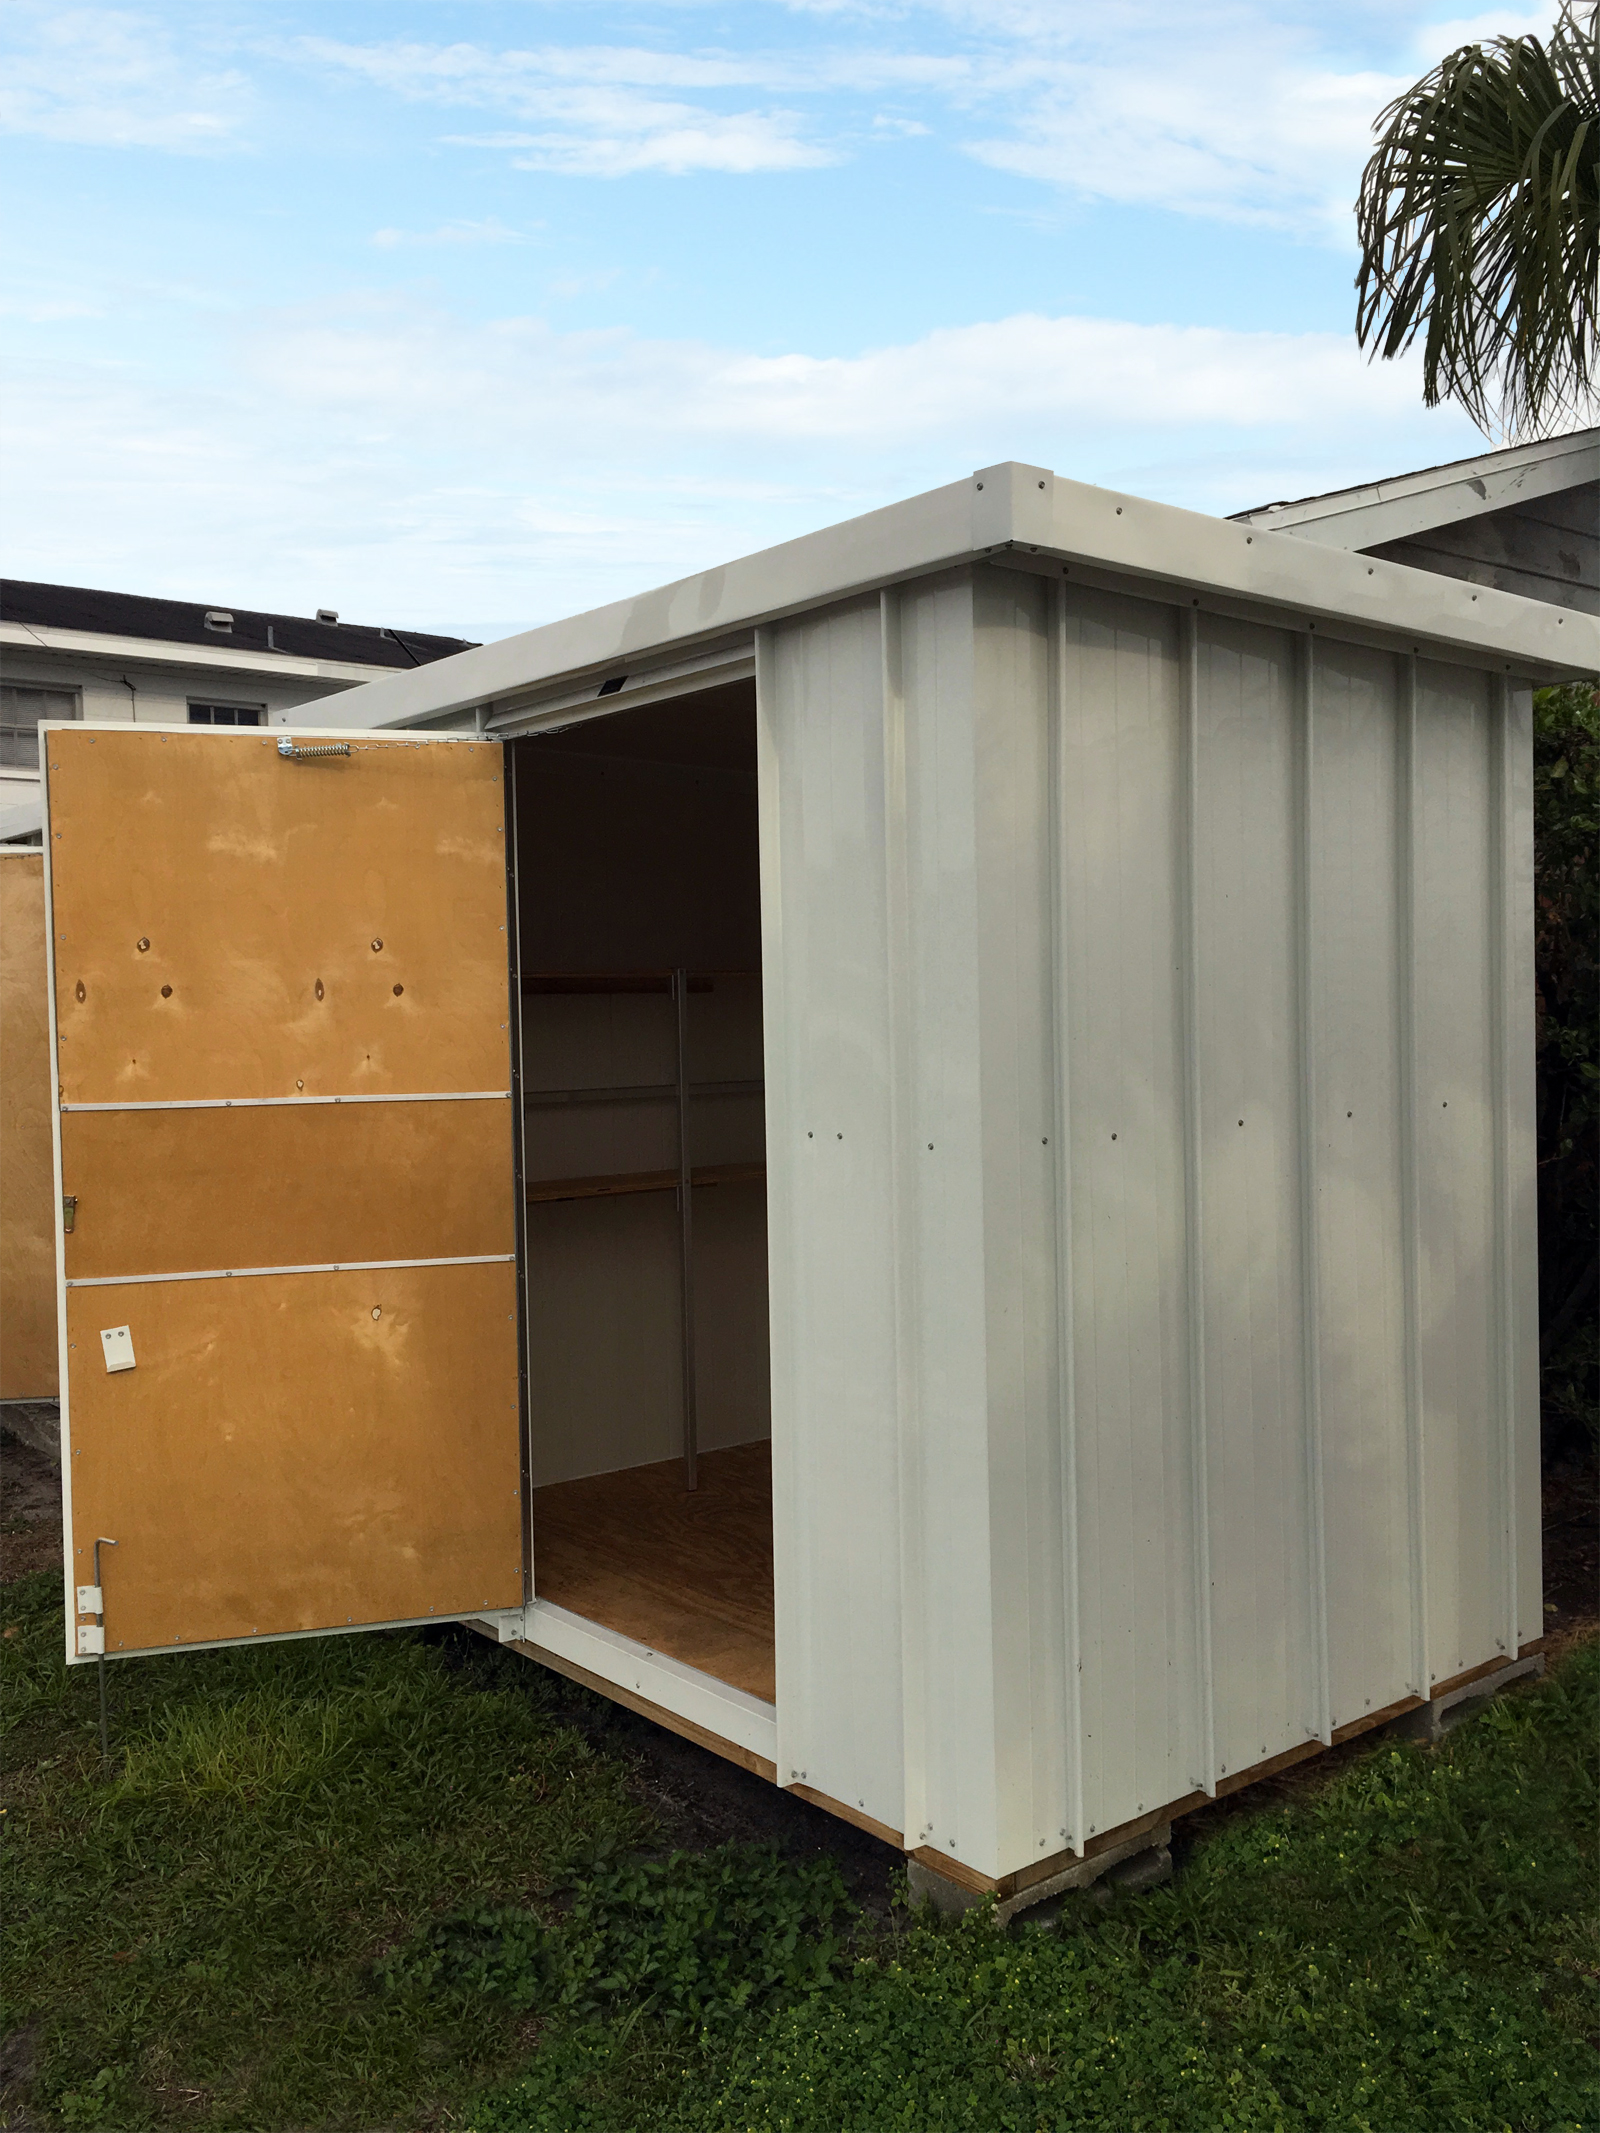 Flat Roof Wooden Sheds : Flat roof storage shed aluminum buildings wally watt